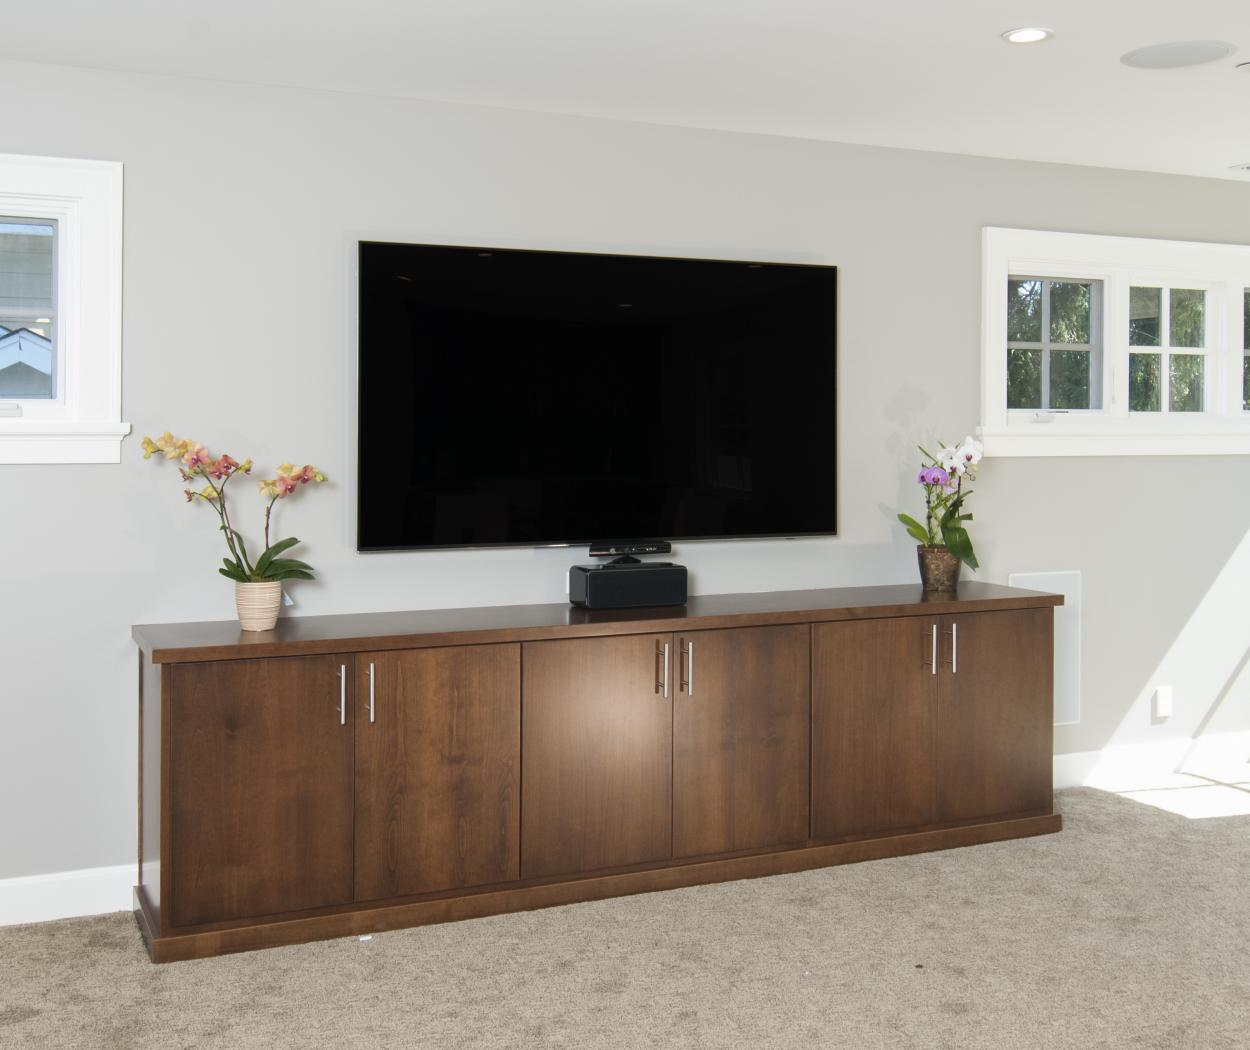 Contemporary Entertainment Center Built in Alder and Finished with a Chocolate Stain